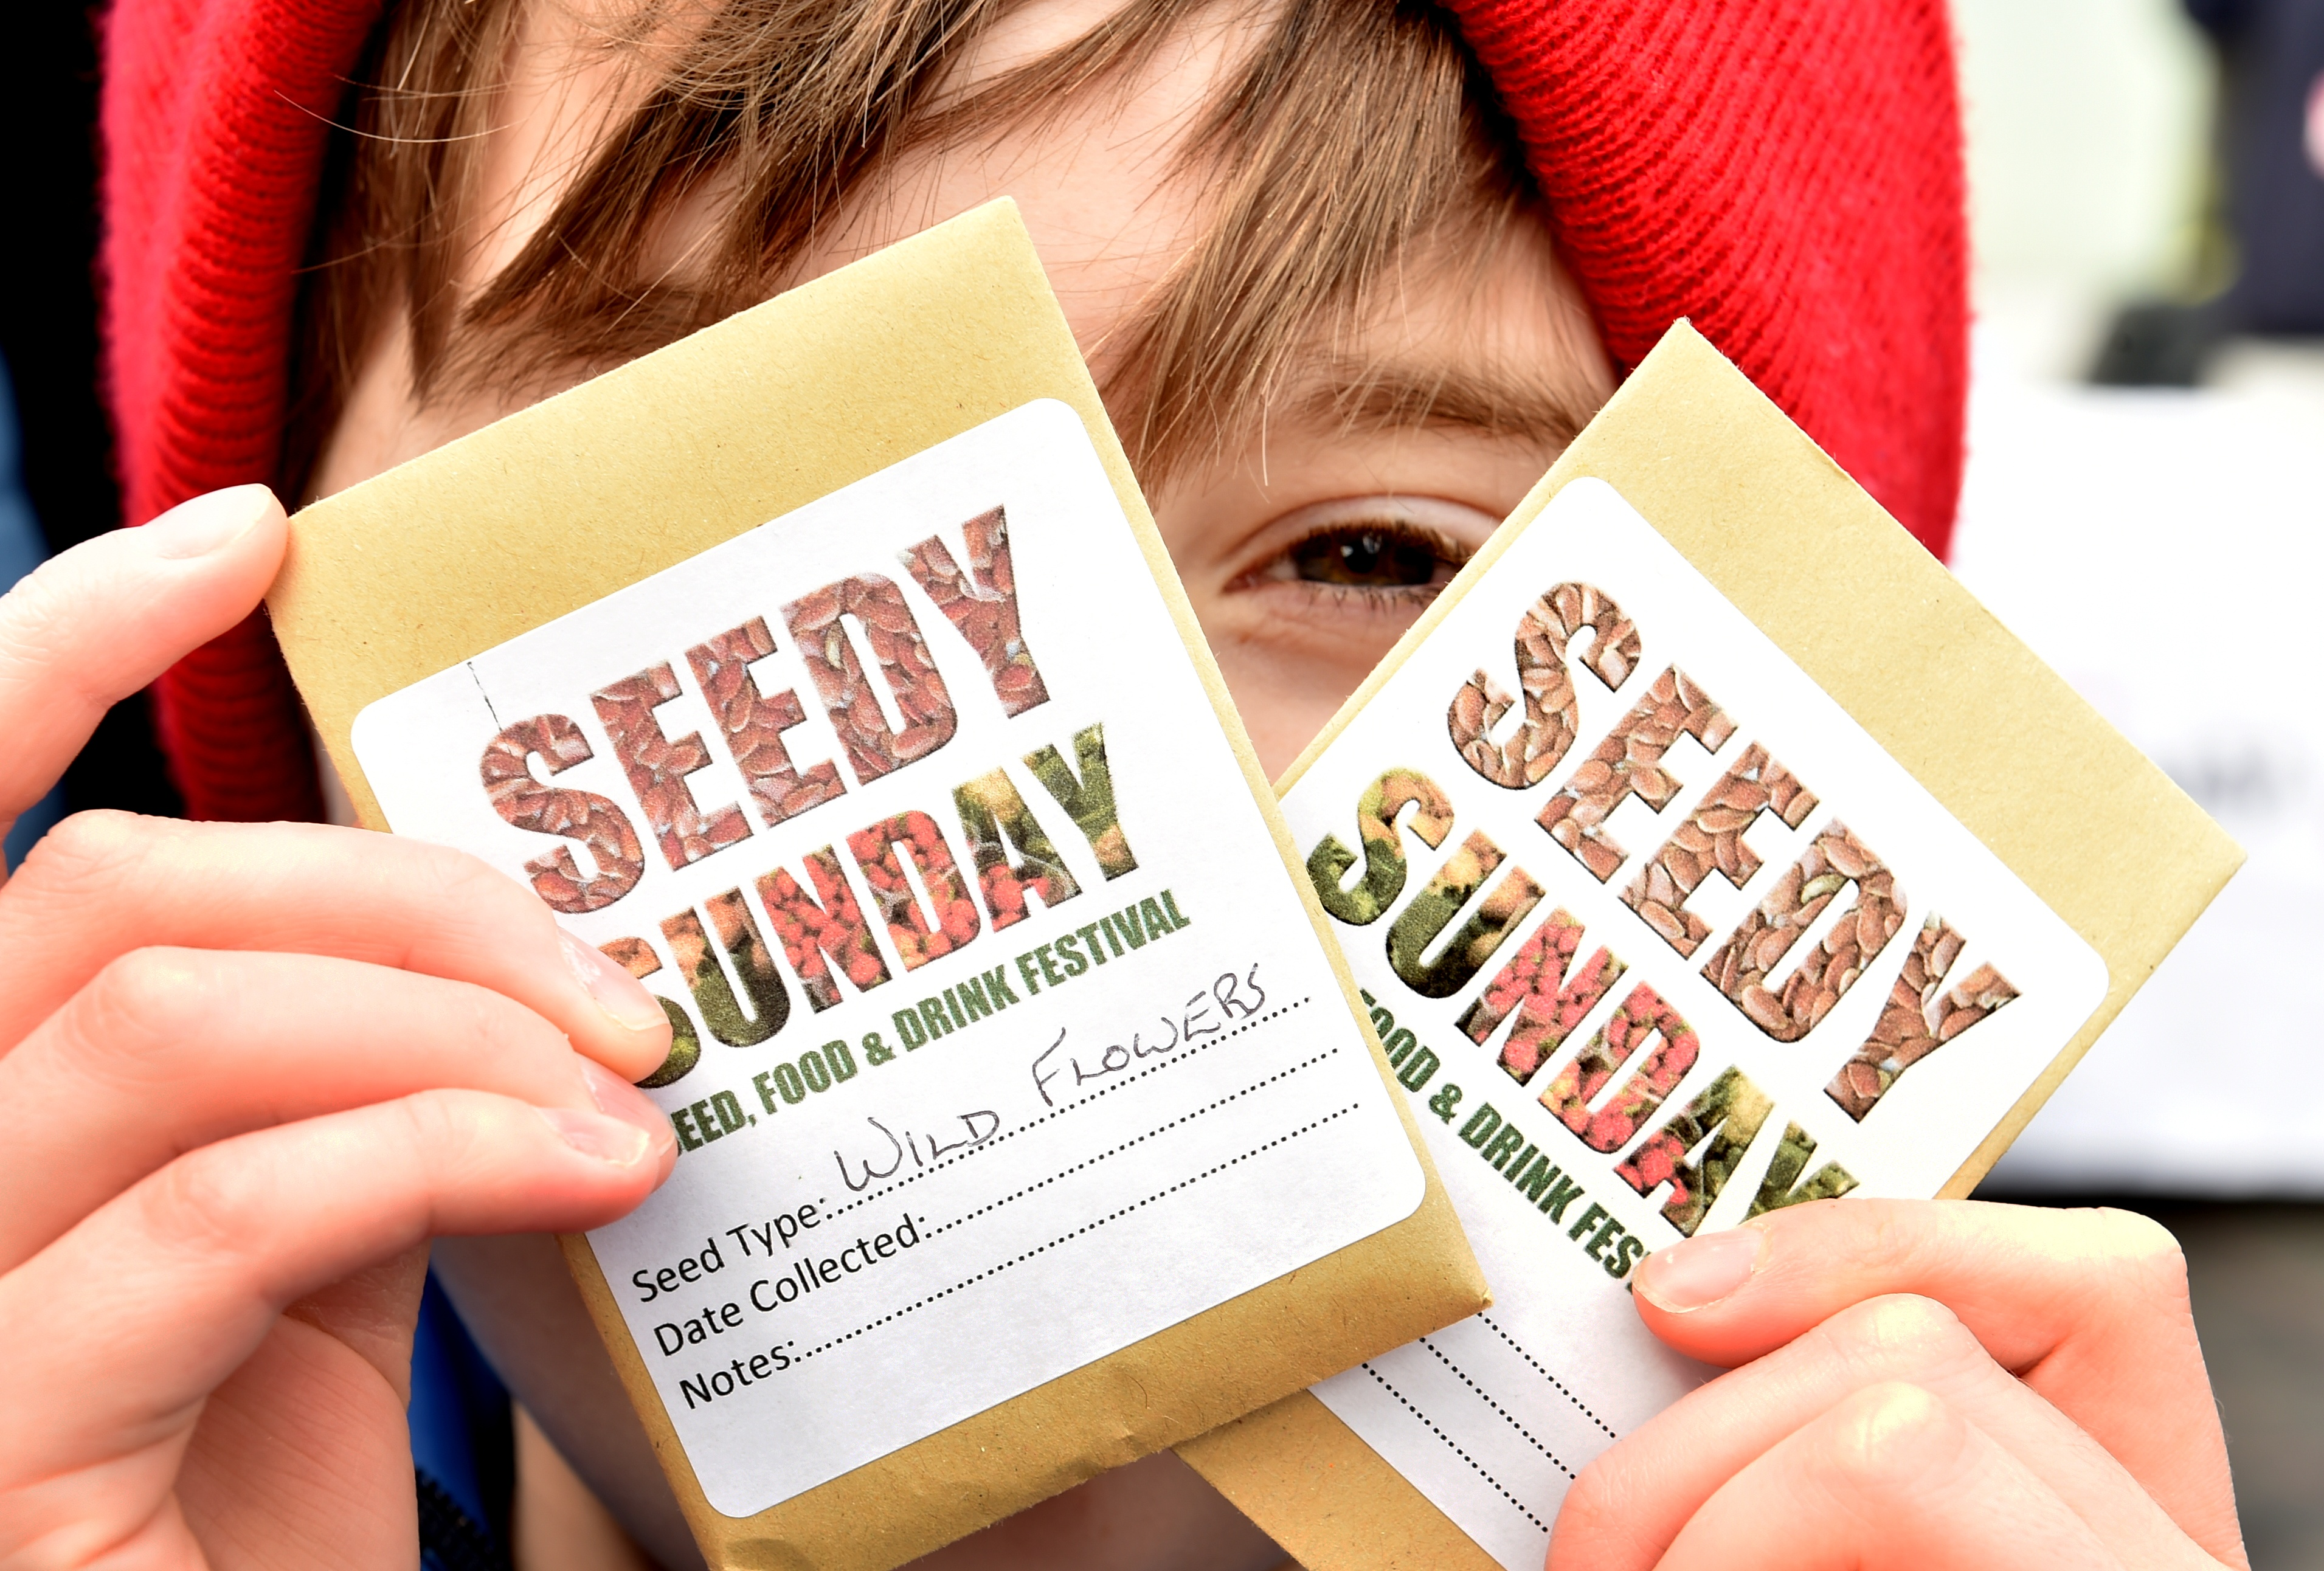 Scott Macpherson, 8 chooses some seeds at the Seedy SUnday festival in Aden Country Park. Picture by COLIN RENNIE   March 17, 2019.